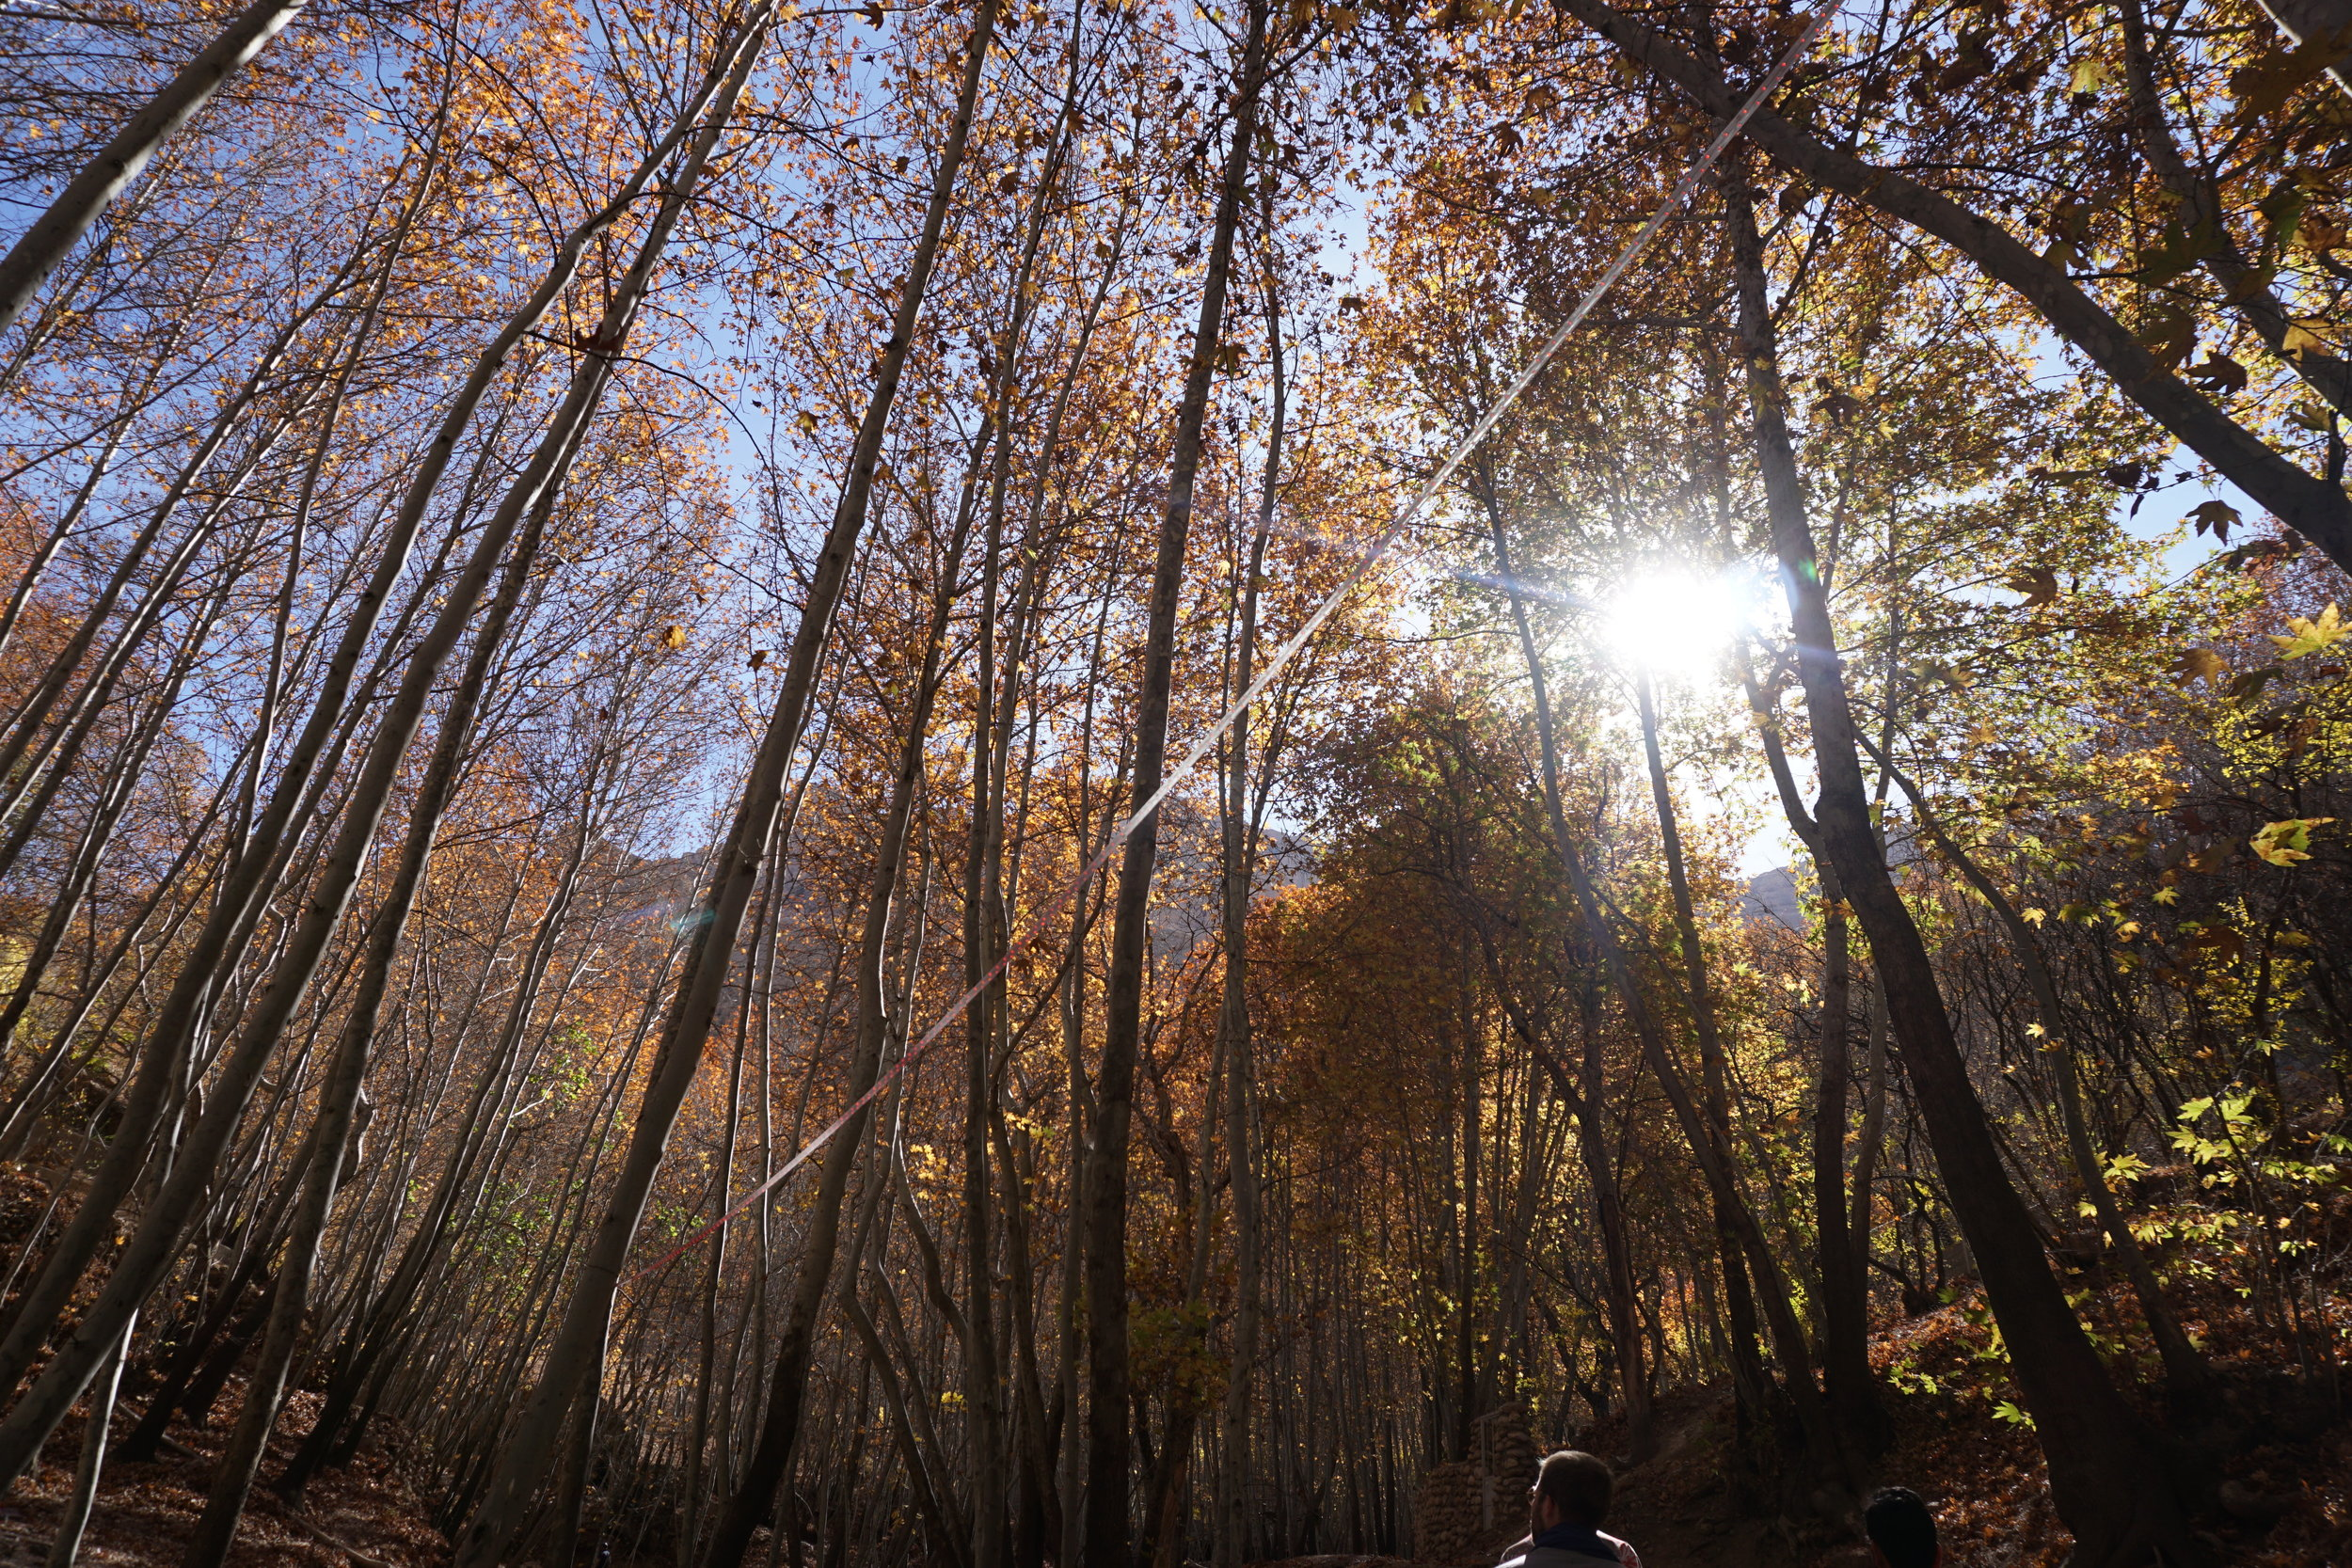 The trees in Iran are quite special and Iranians love spending time among these magical forests in Autumn.